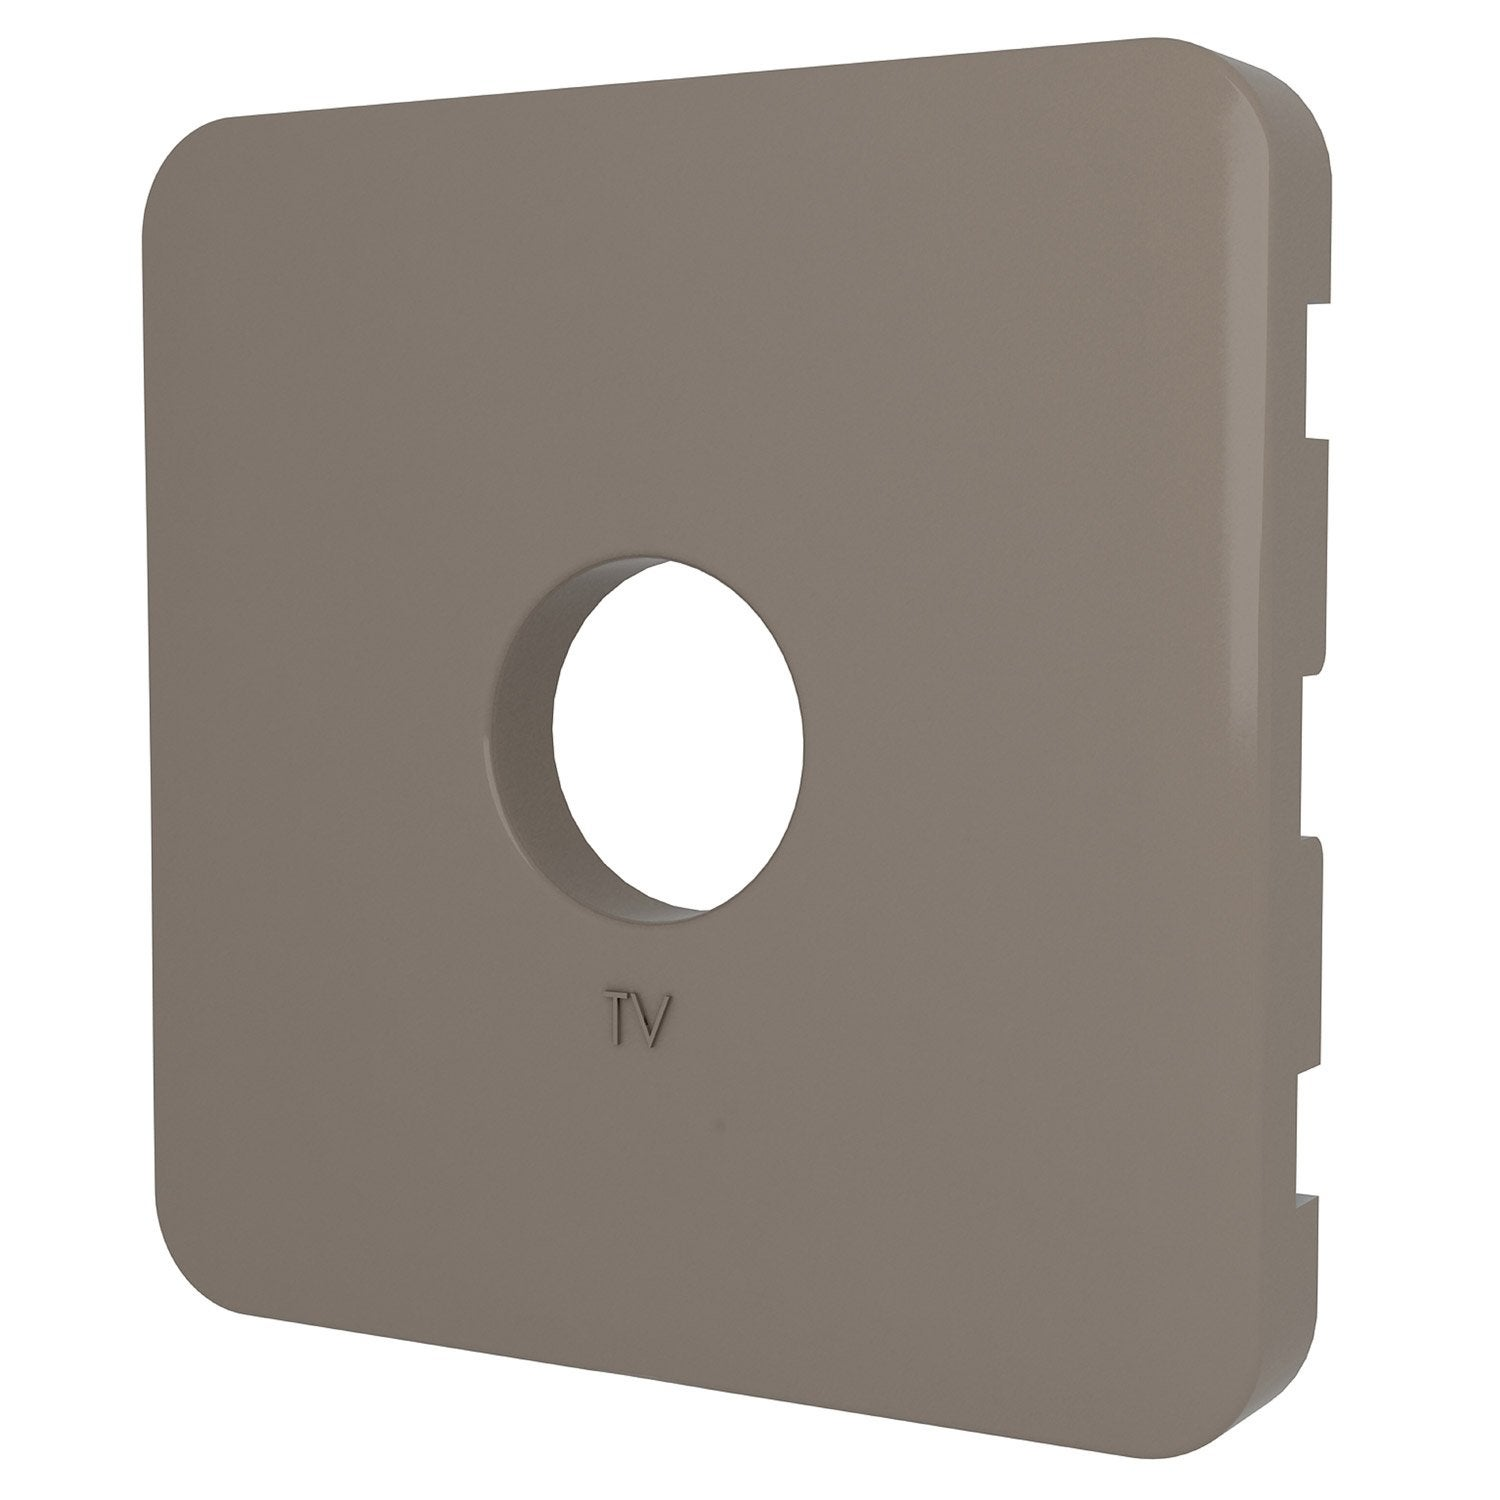 cache prise tv, prise tv type f cosy, lexman brun taupe n°3 mat